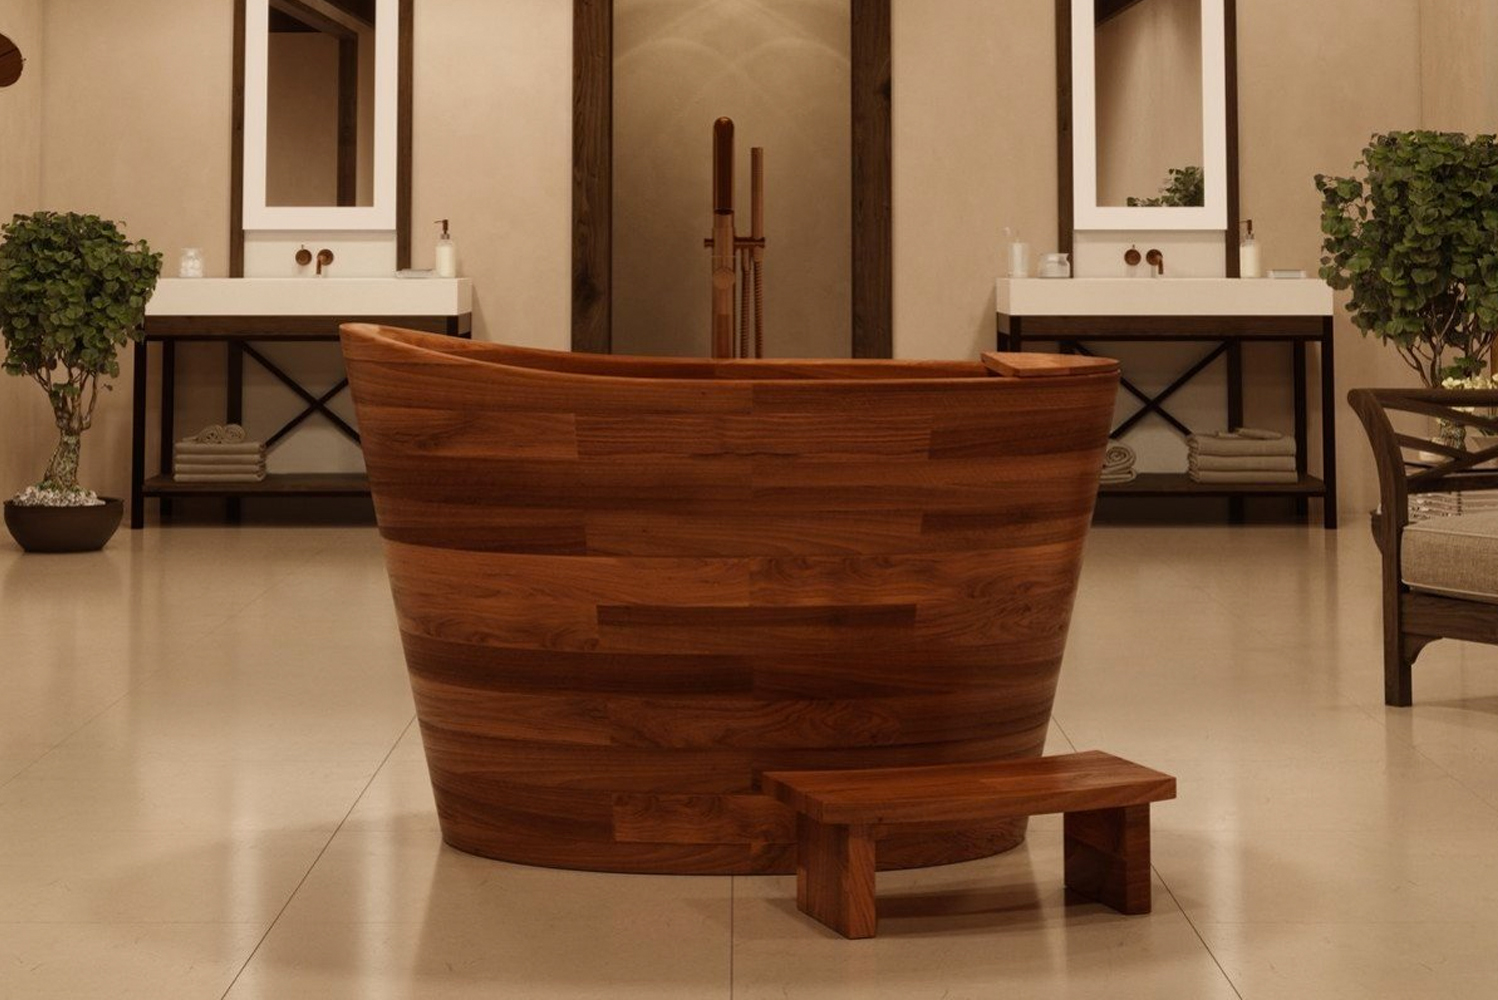 Aquatica launched the True Ofuro Japanese seated soaking tub.